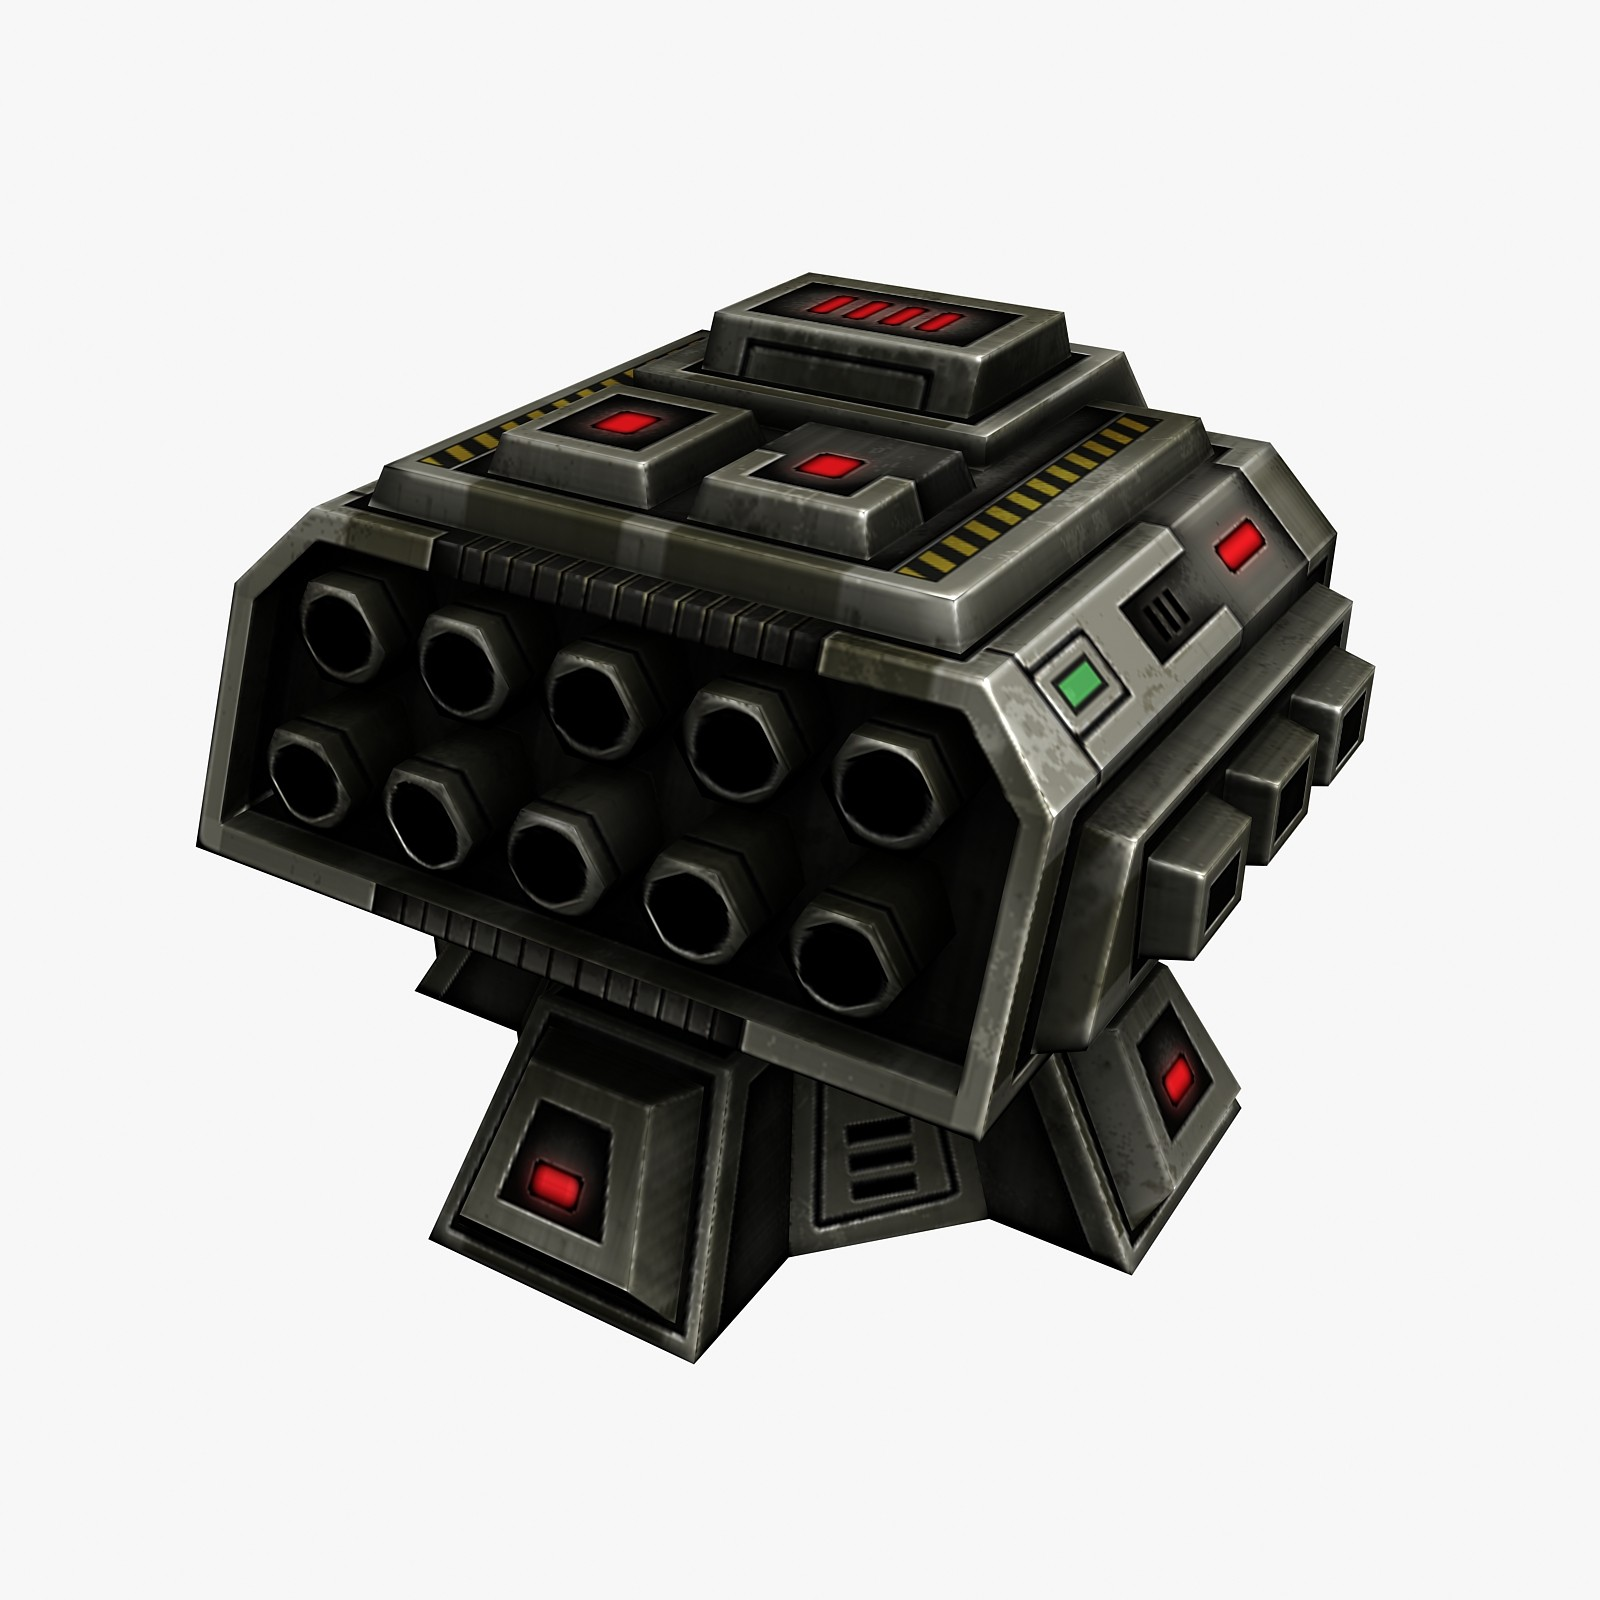 missile_launcher_1_preview_1.jpg